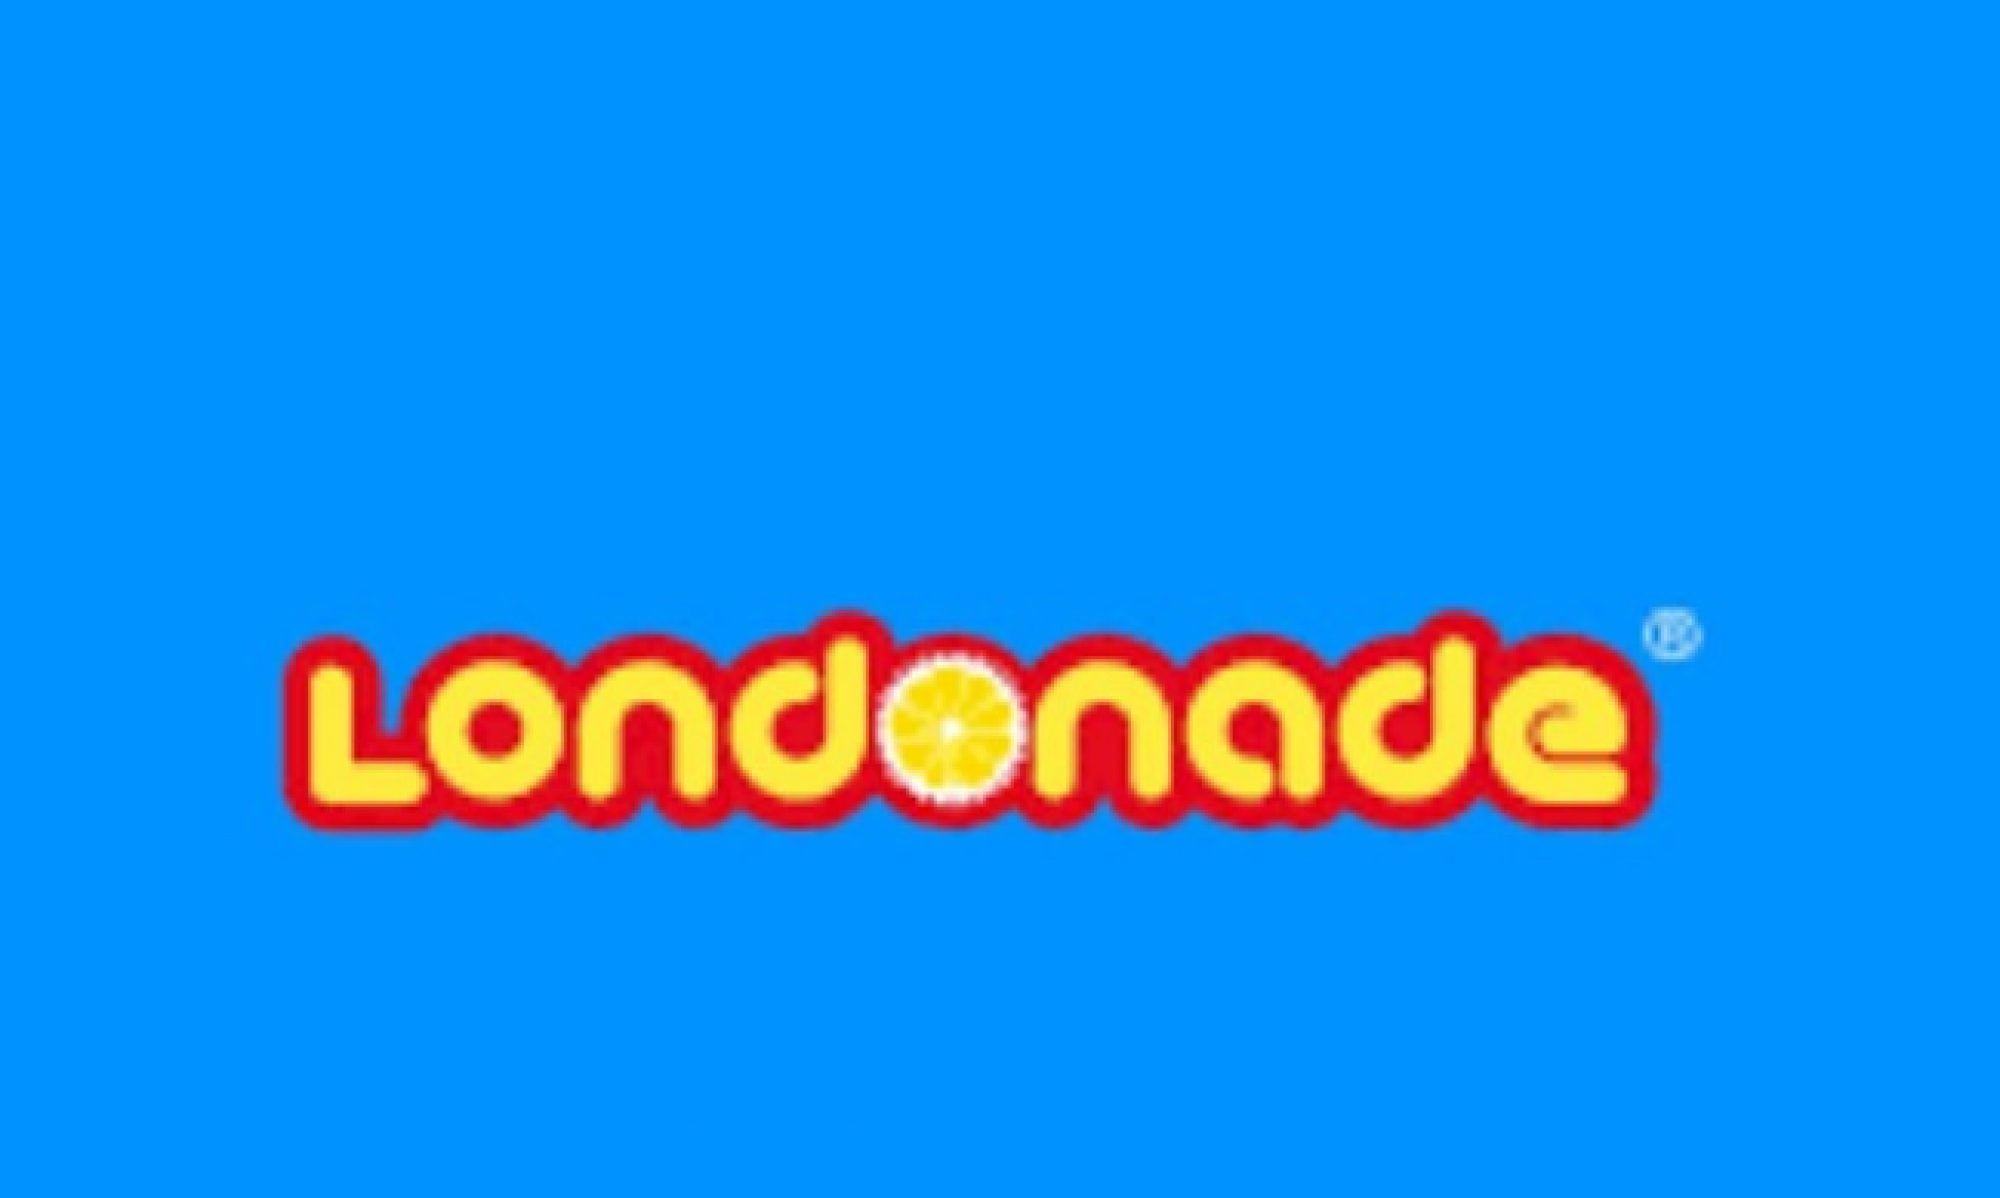 Londonade® -  London Lemonade